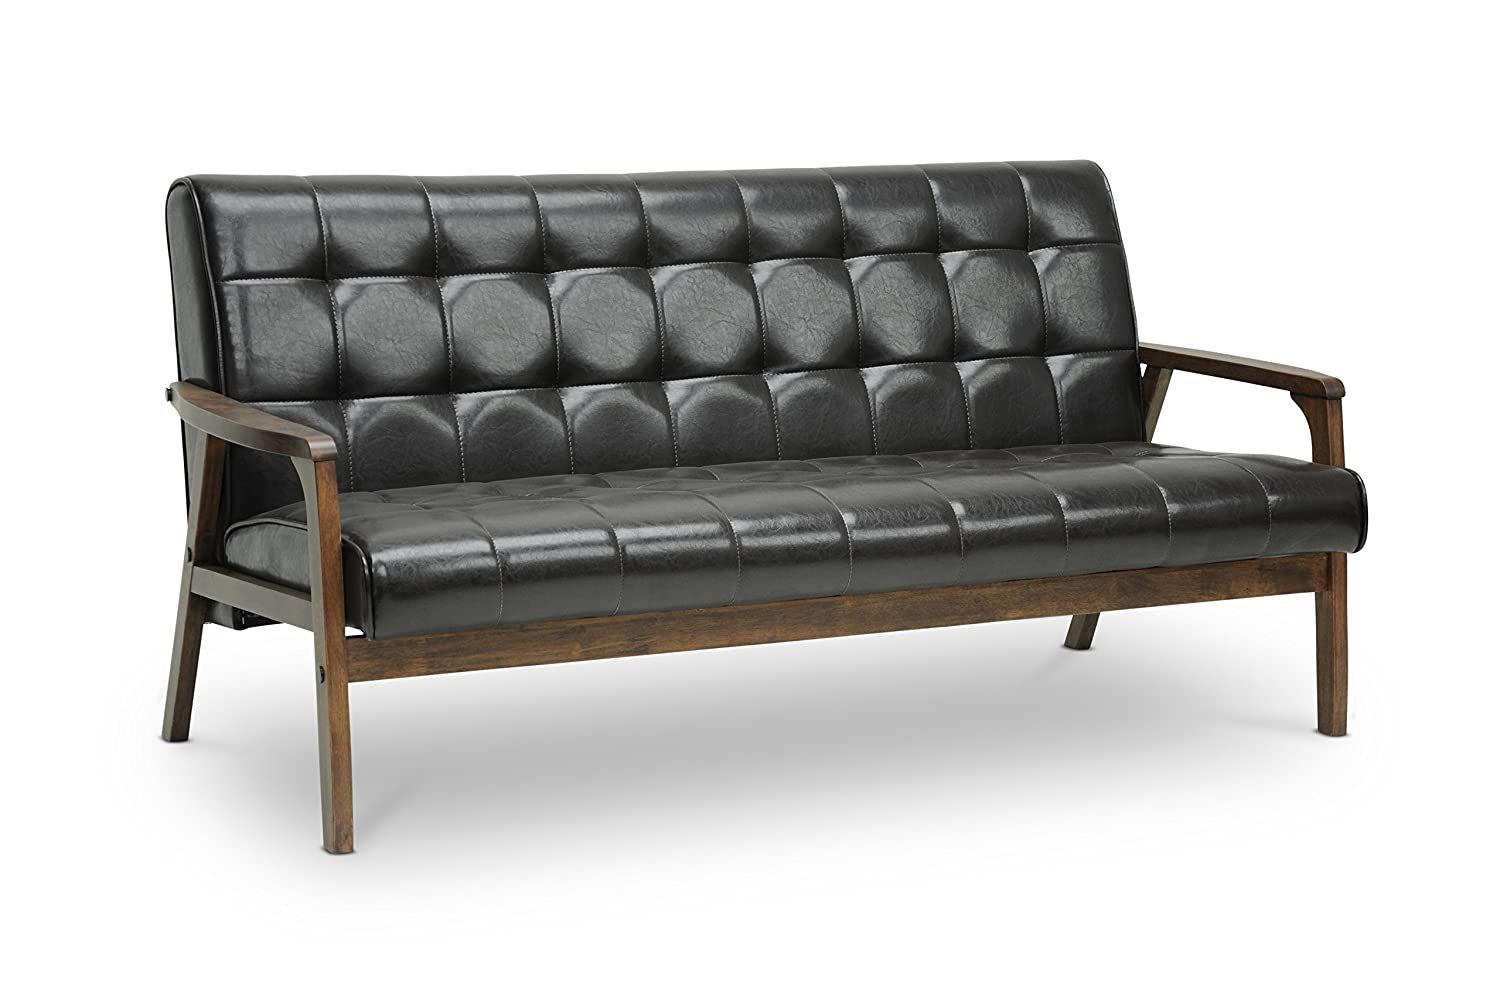 Baxton Studio Mid-Century Masterpieces Sofa, Brown Wholesale Interiors TOGO SF-109-541